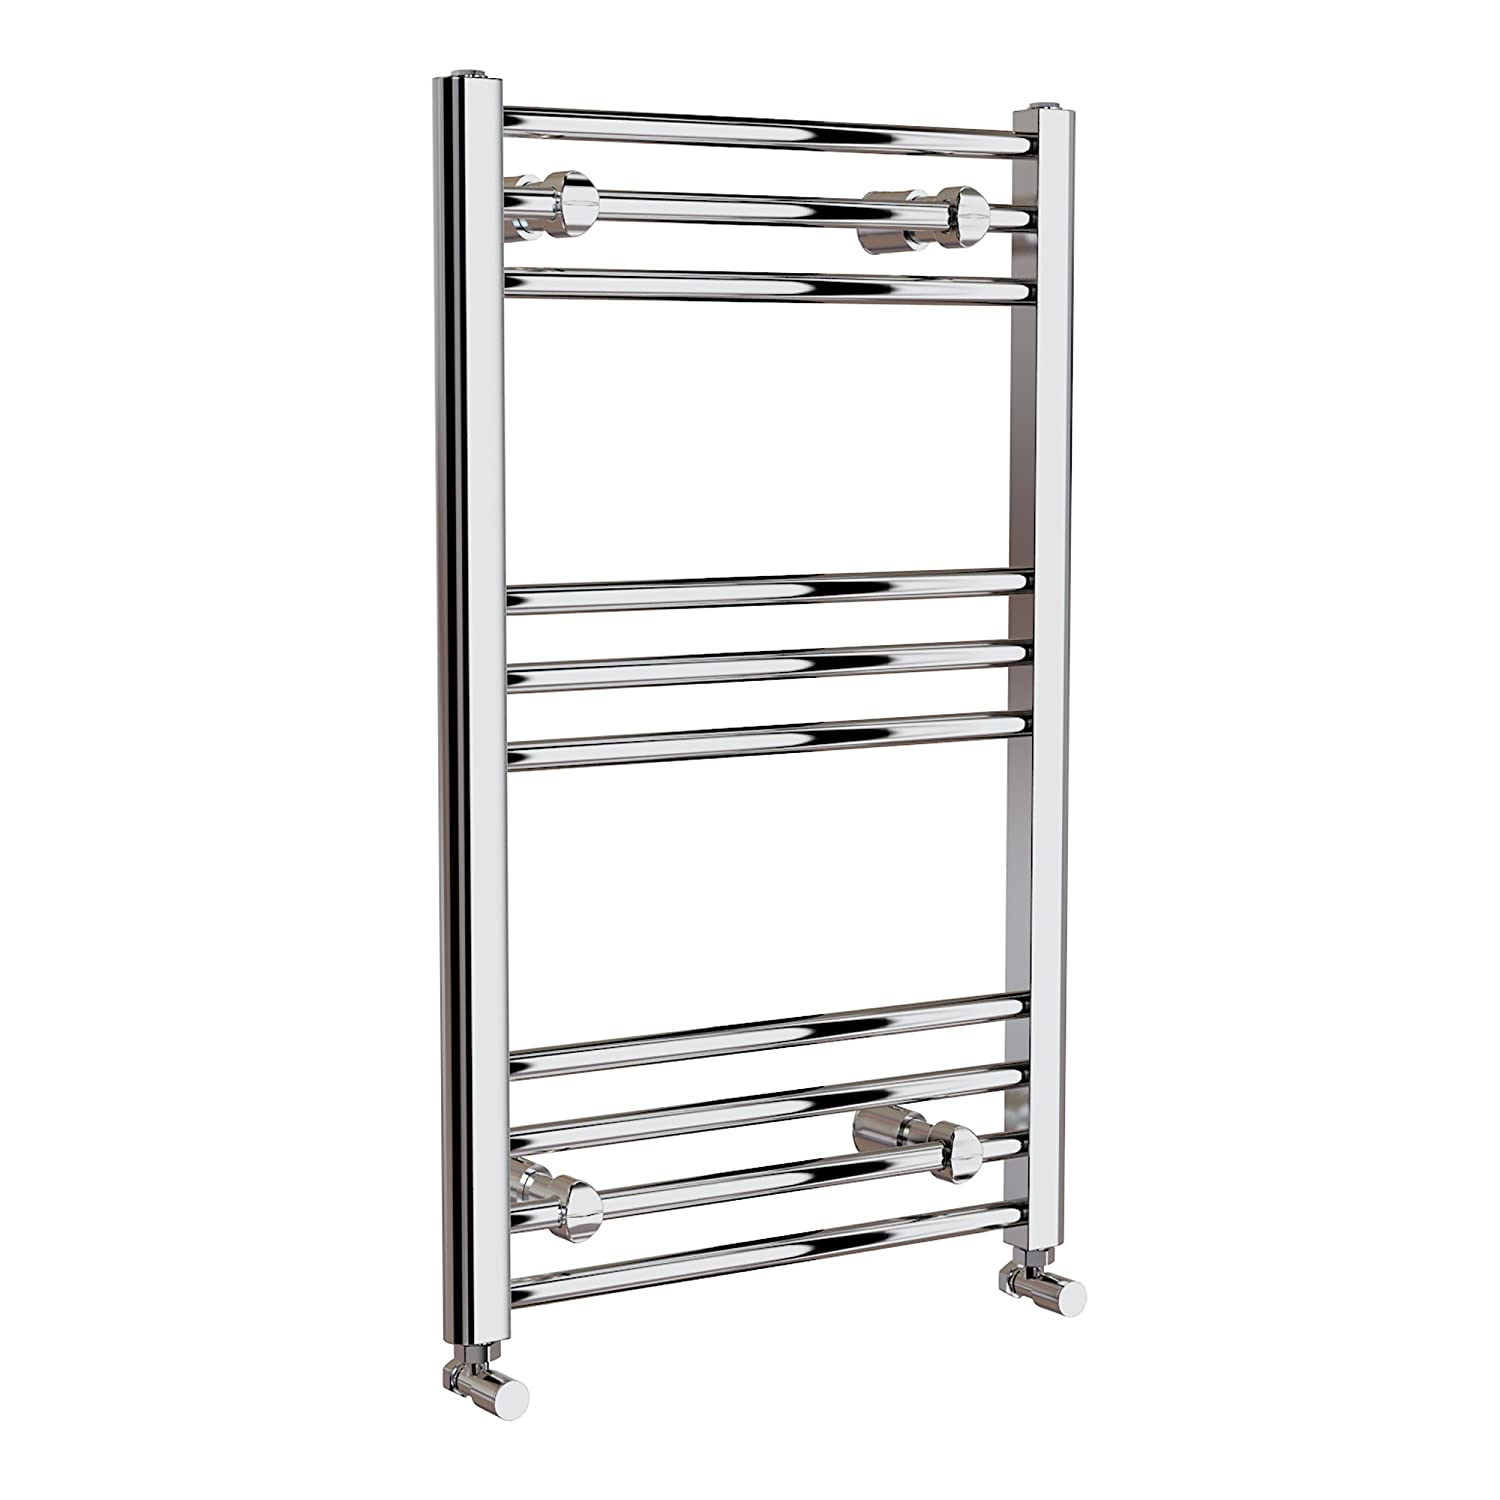 Natasha ladder rail straight modern electric towel radiator in chrome - 800x500mm Chrome Straight Electric Towel Radiator Ladder Modern Bathroom Re151 Ibath Amazon Co Uk Diy Tools